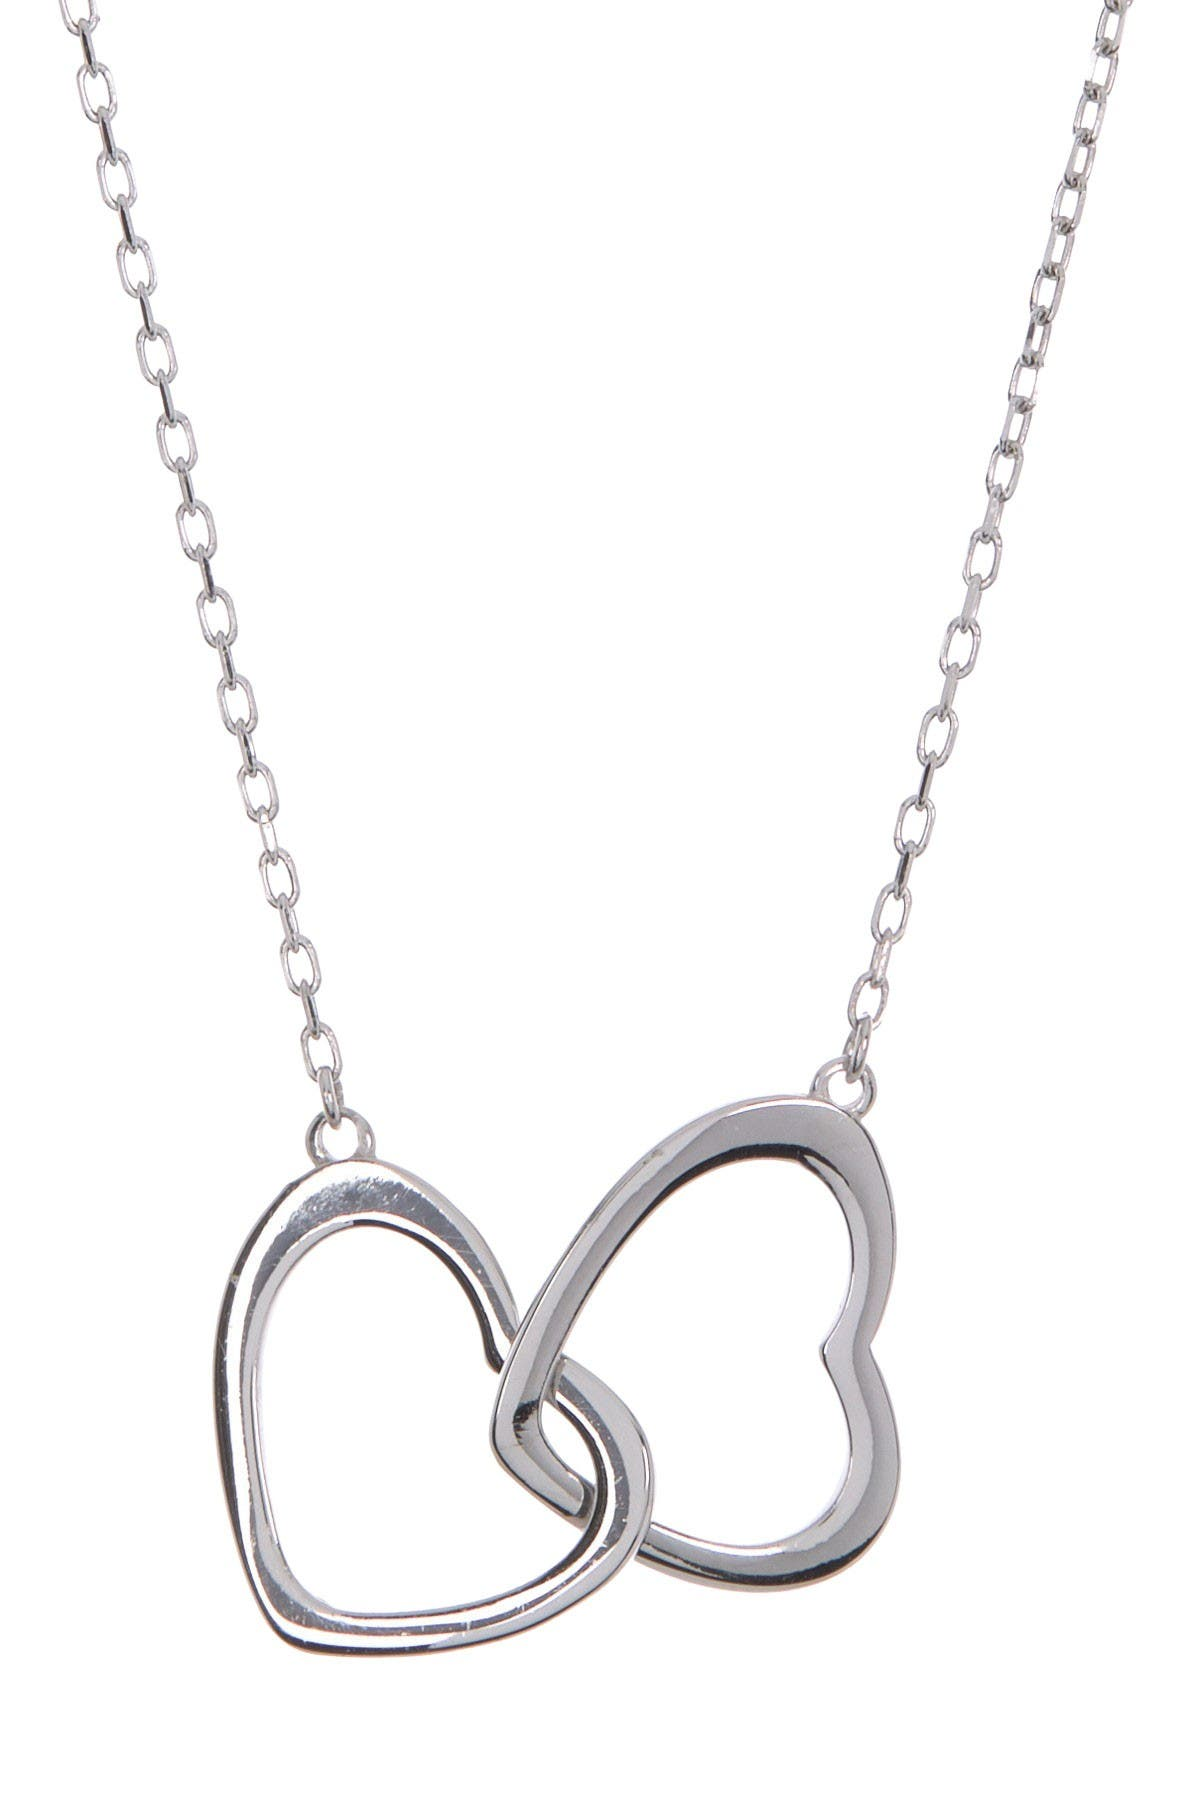 Image of Argento Vivo Sterling Silver Double Open Heart Pendant Necklace